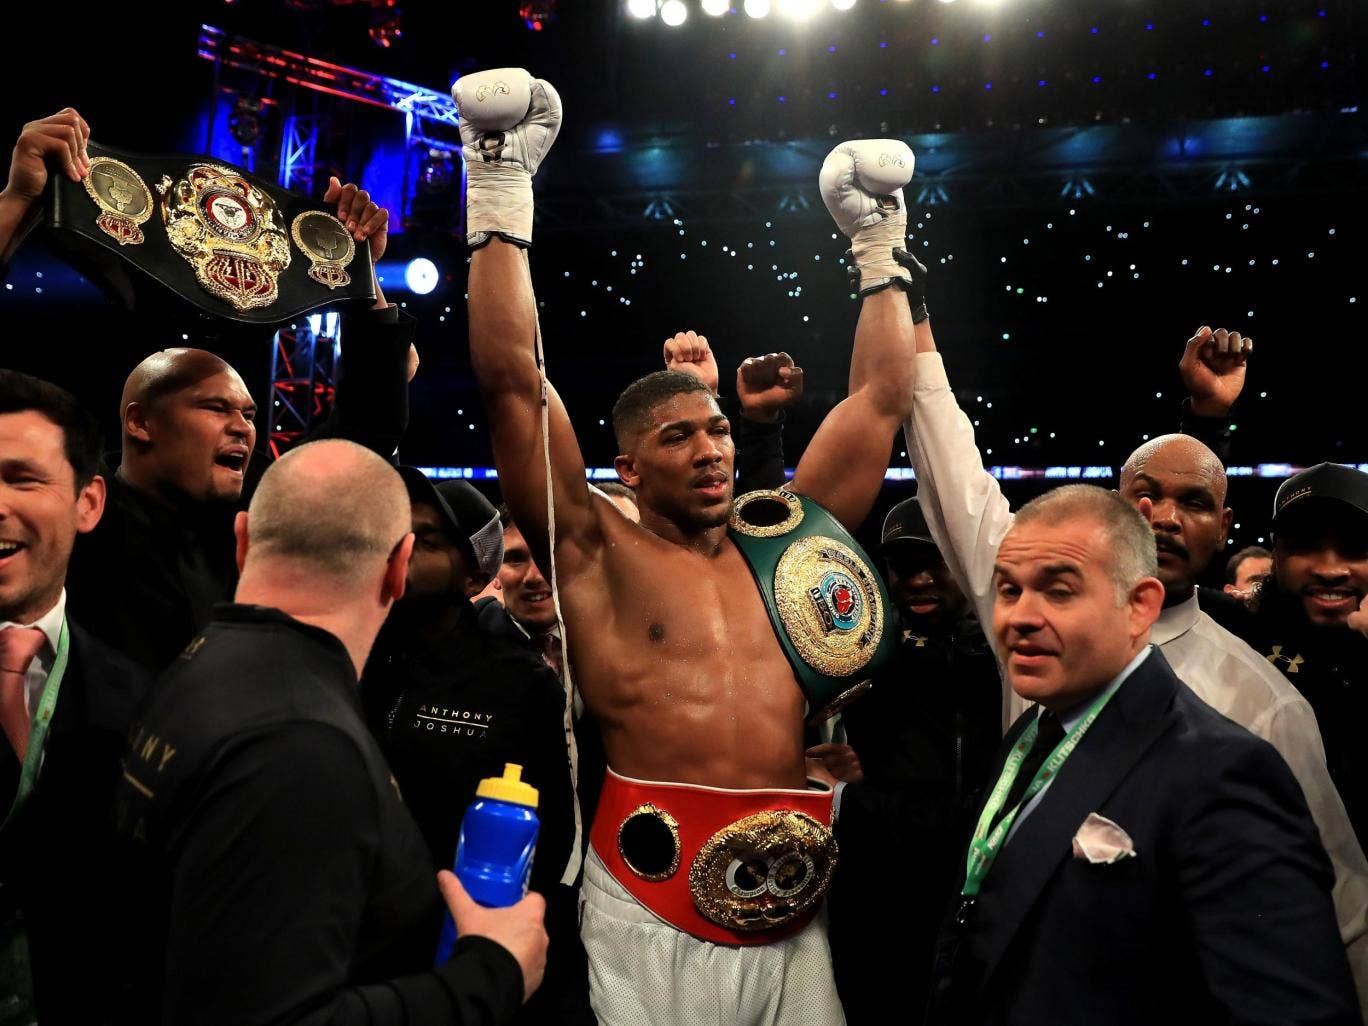 Anthony Joshua Wins fight with Wladimir Klitschko at Wembley